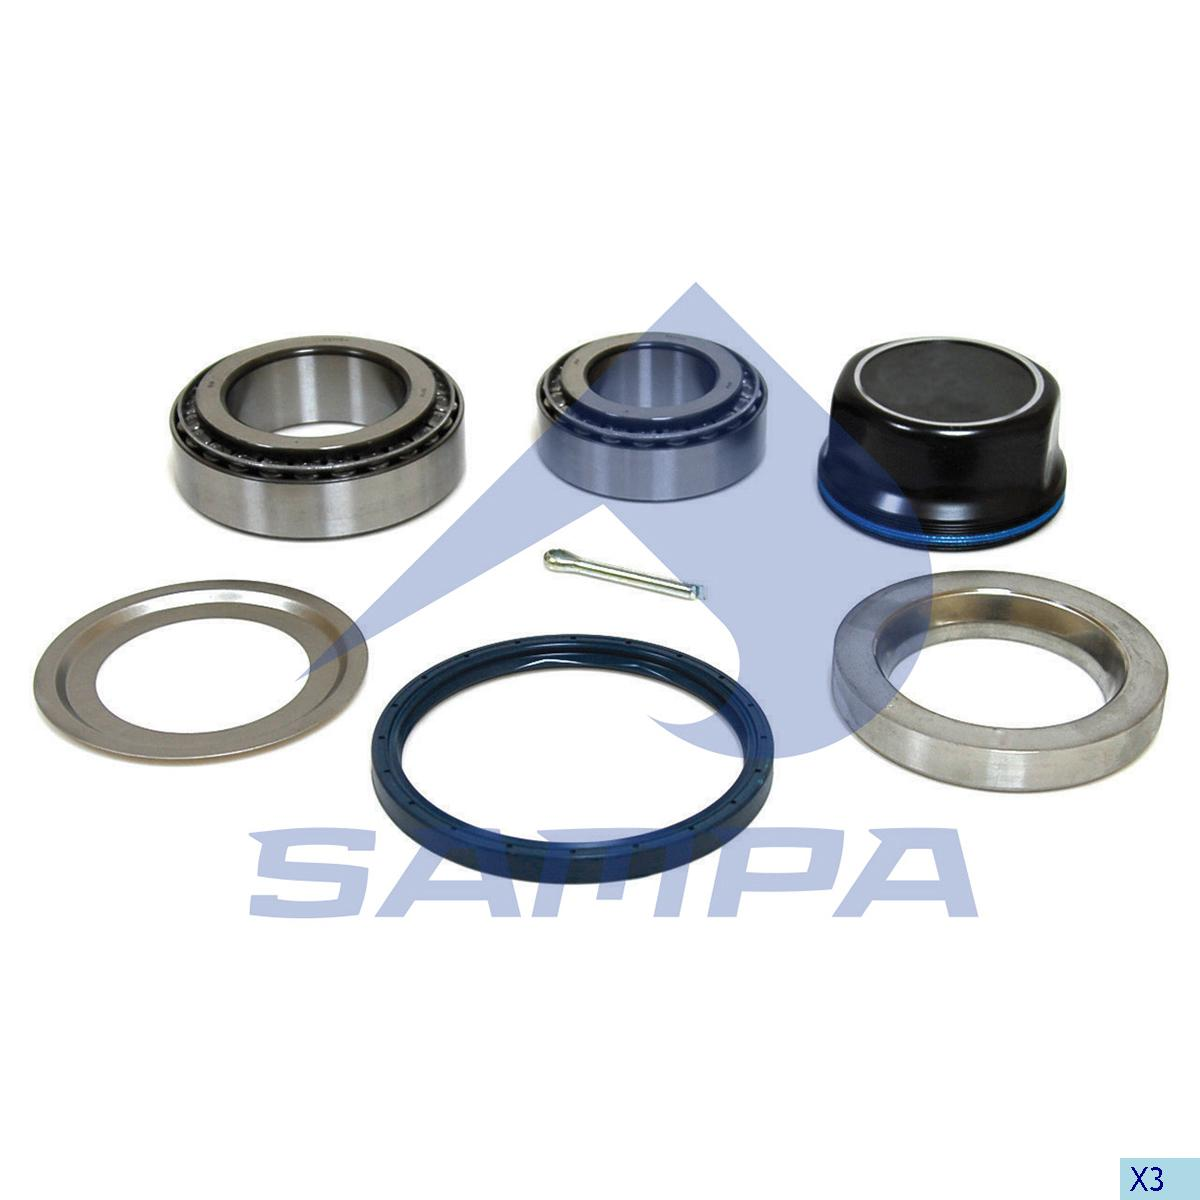 Repair Kit, Wheel Hub, Bergische, Power Unit